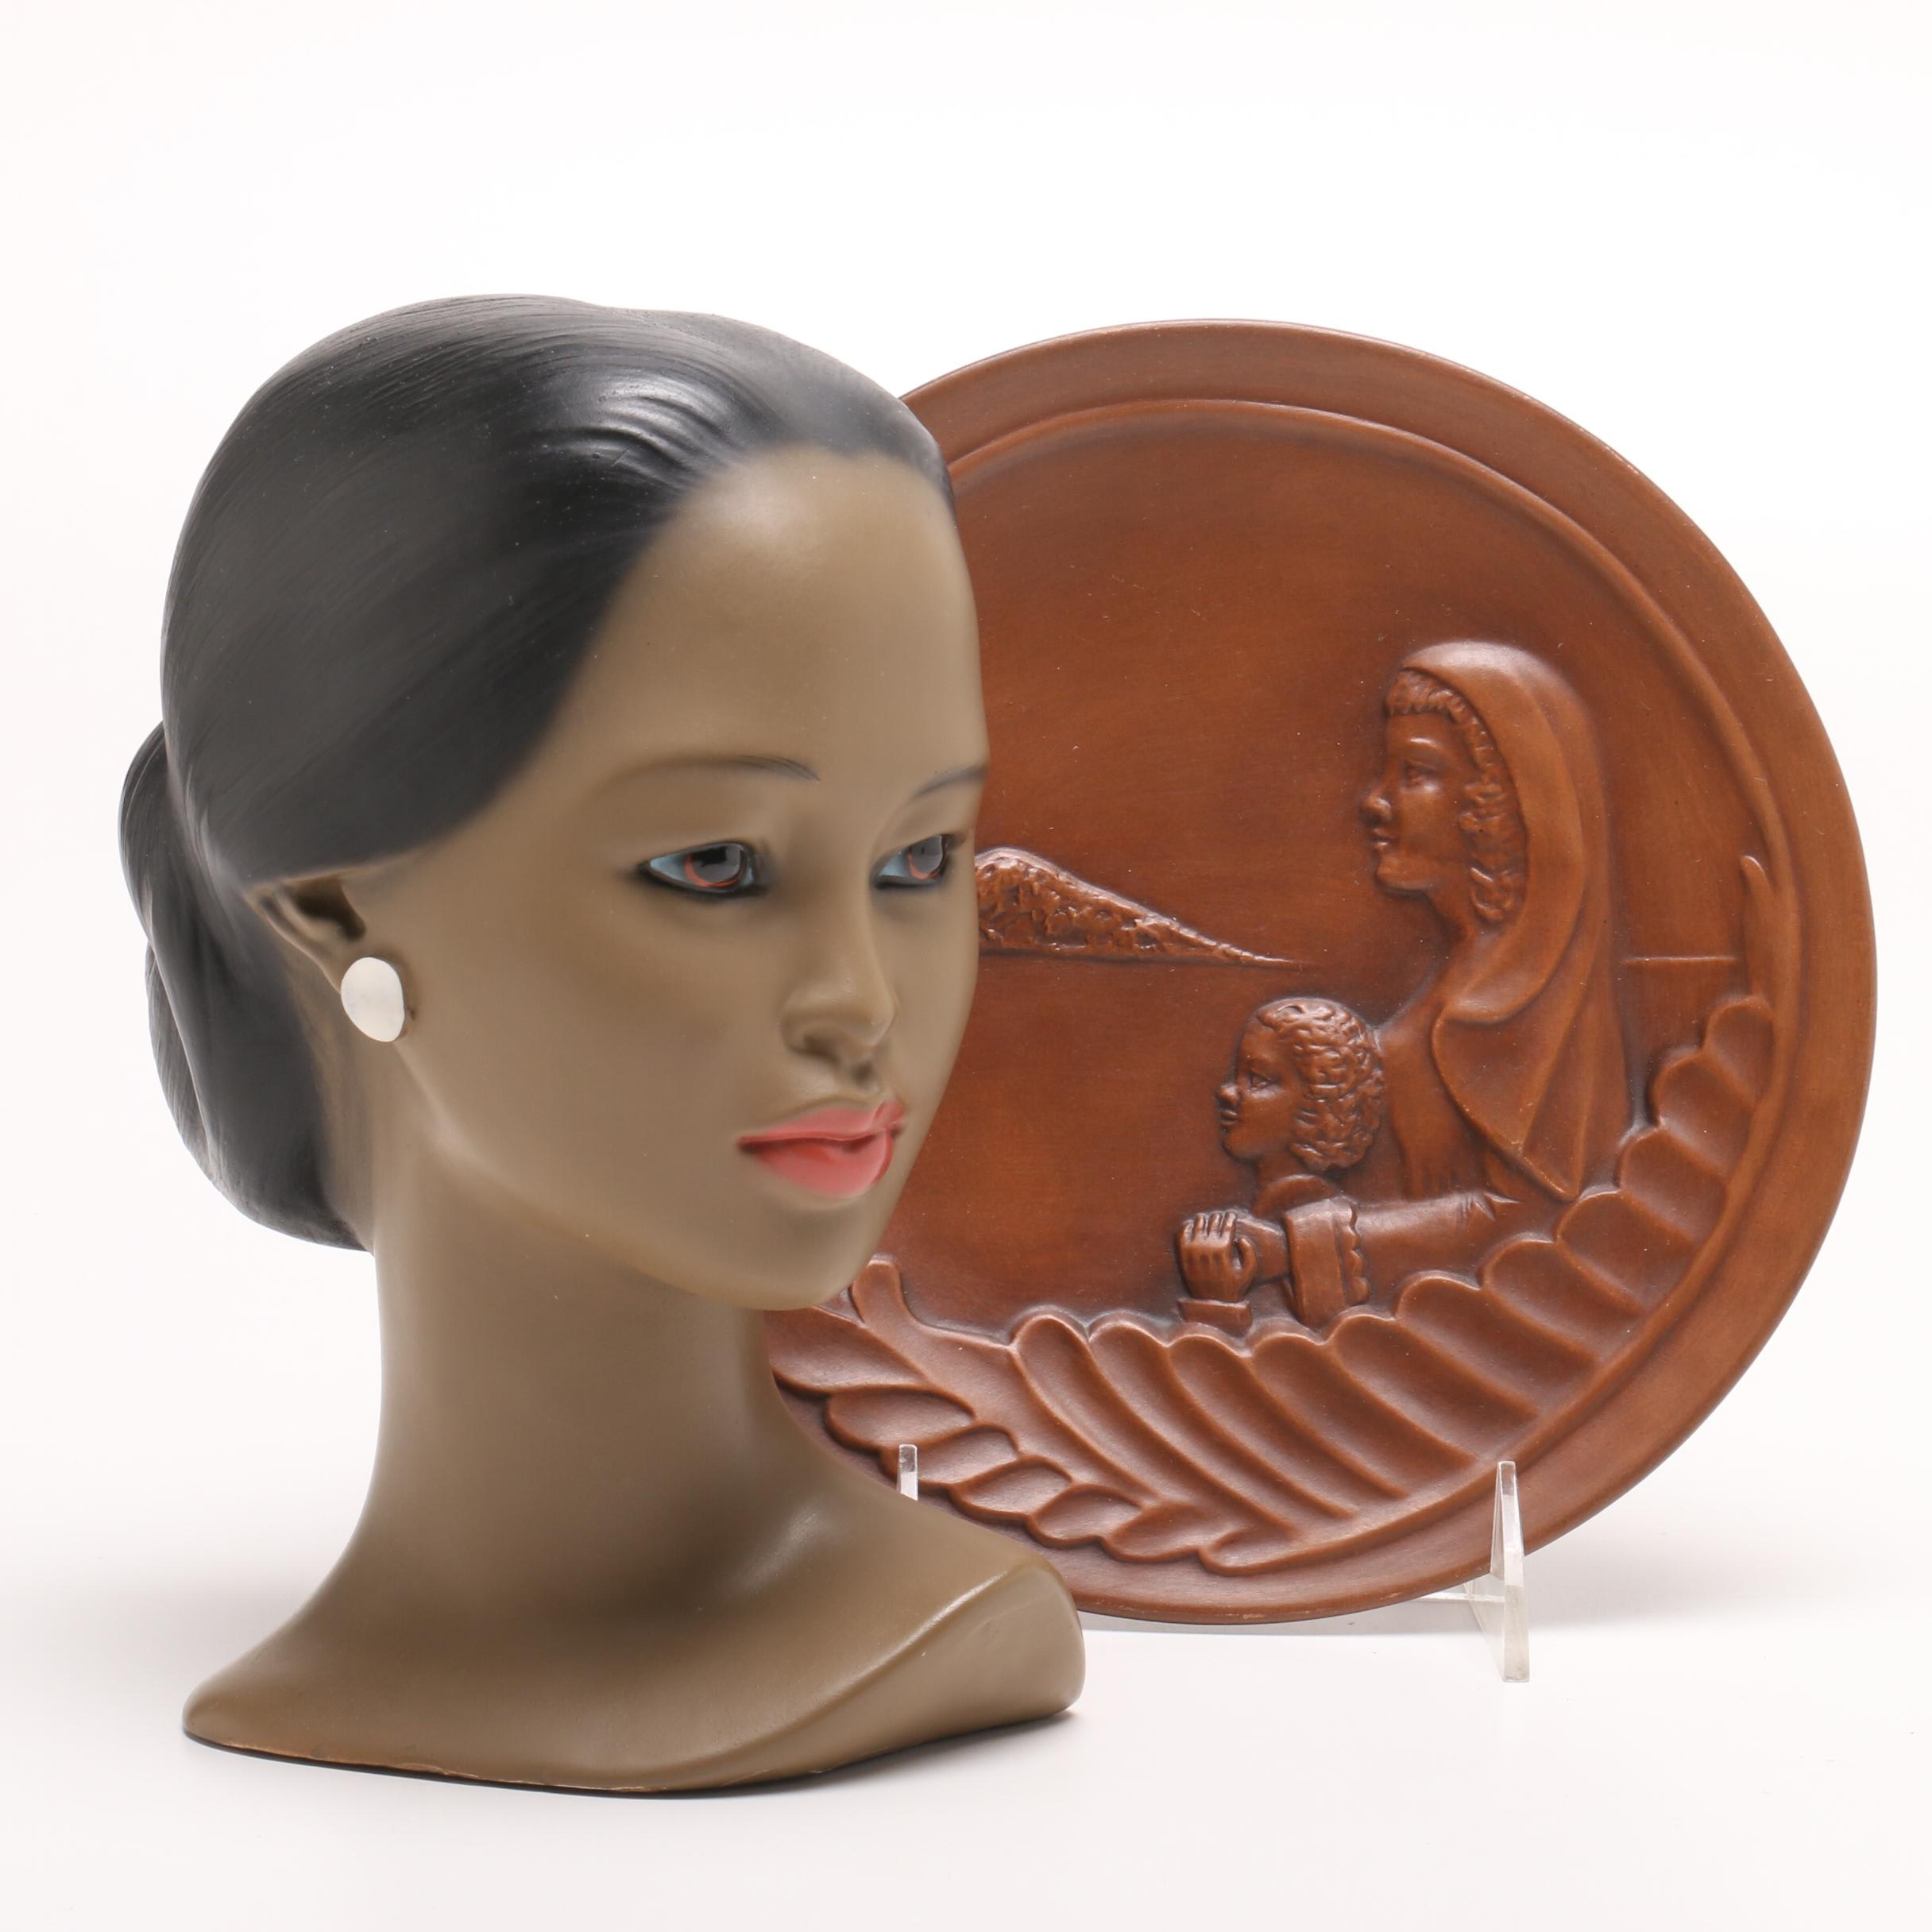 Chalkware Bust Attributed to Marwal and Signed Frankoma Pottery Plate